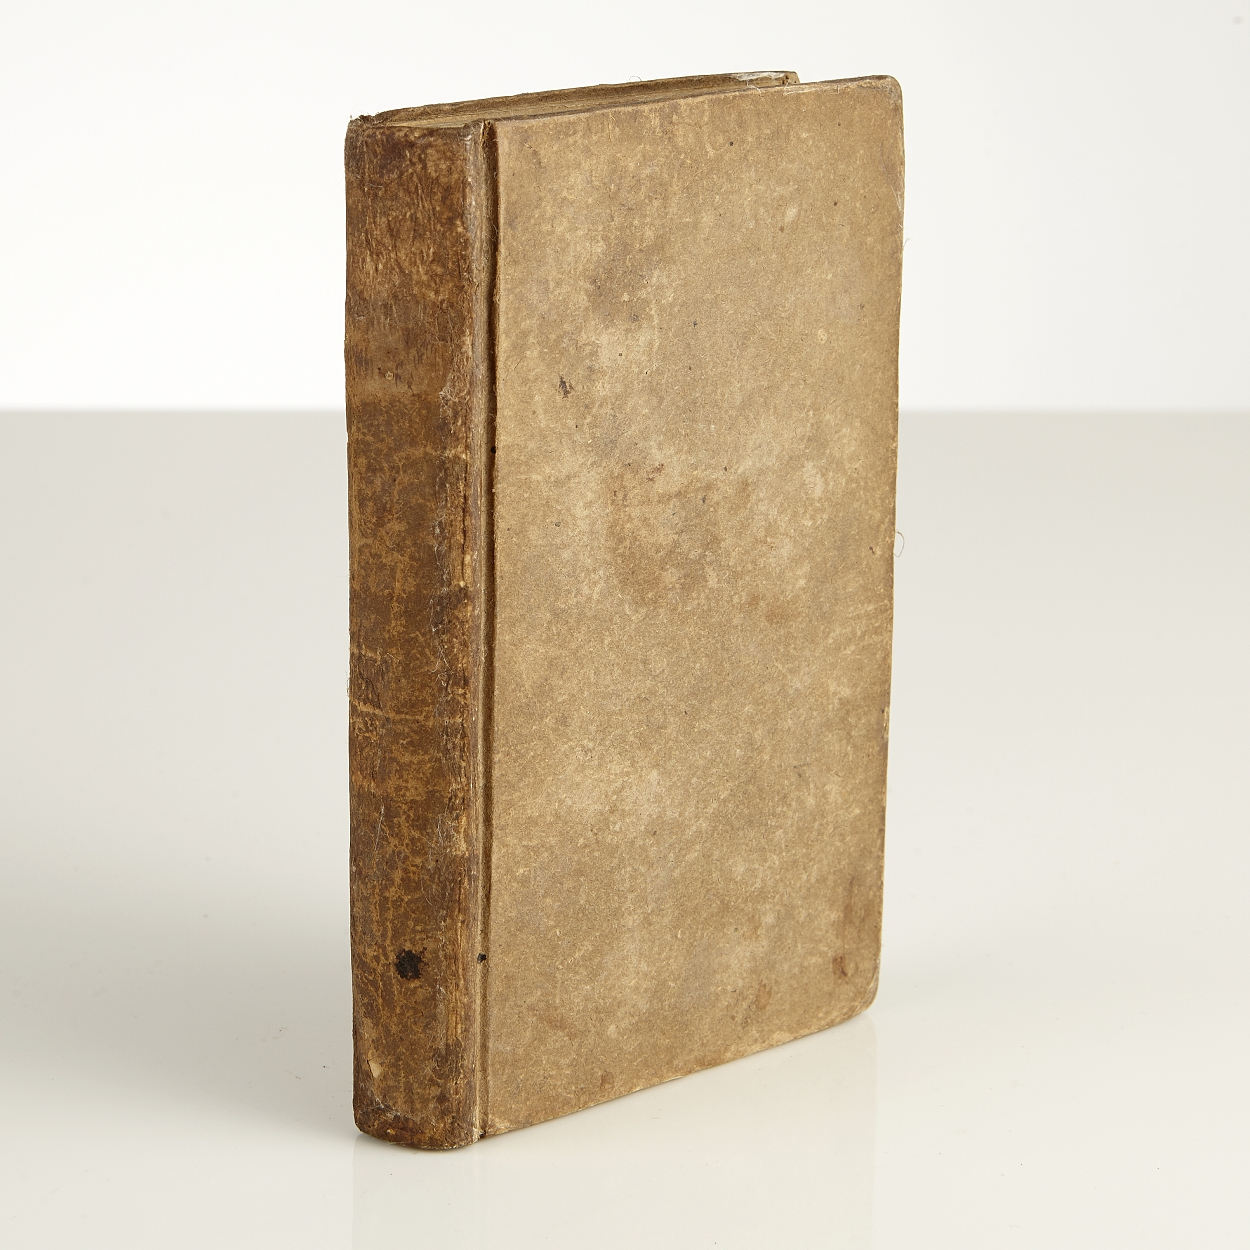 L'aventurier chinois 1773 first edition